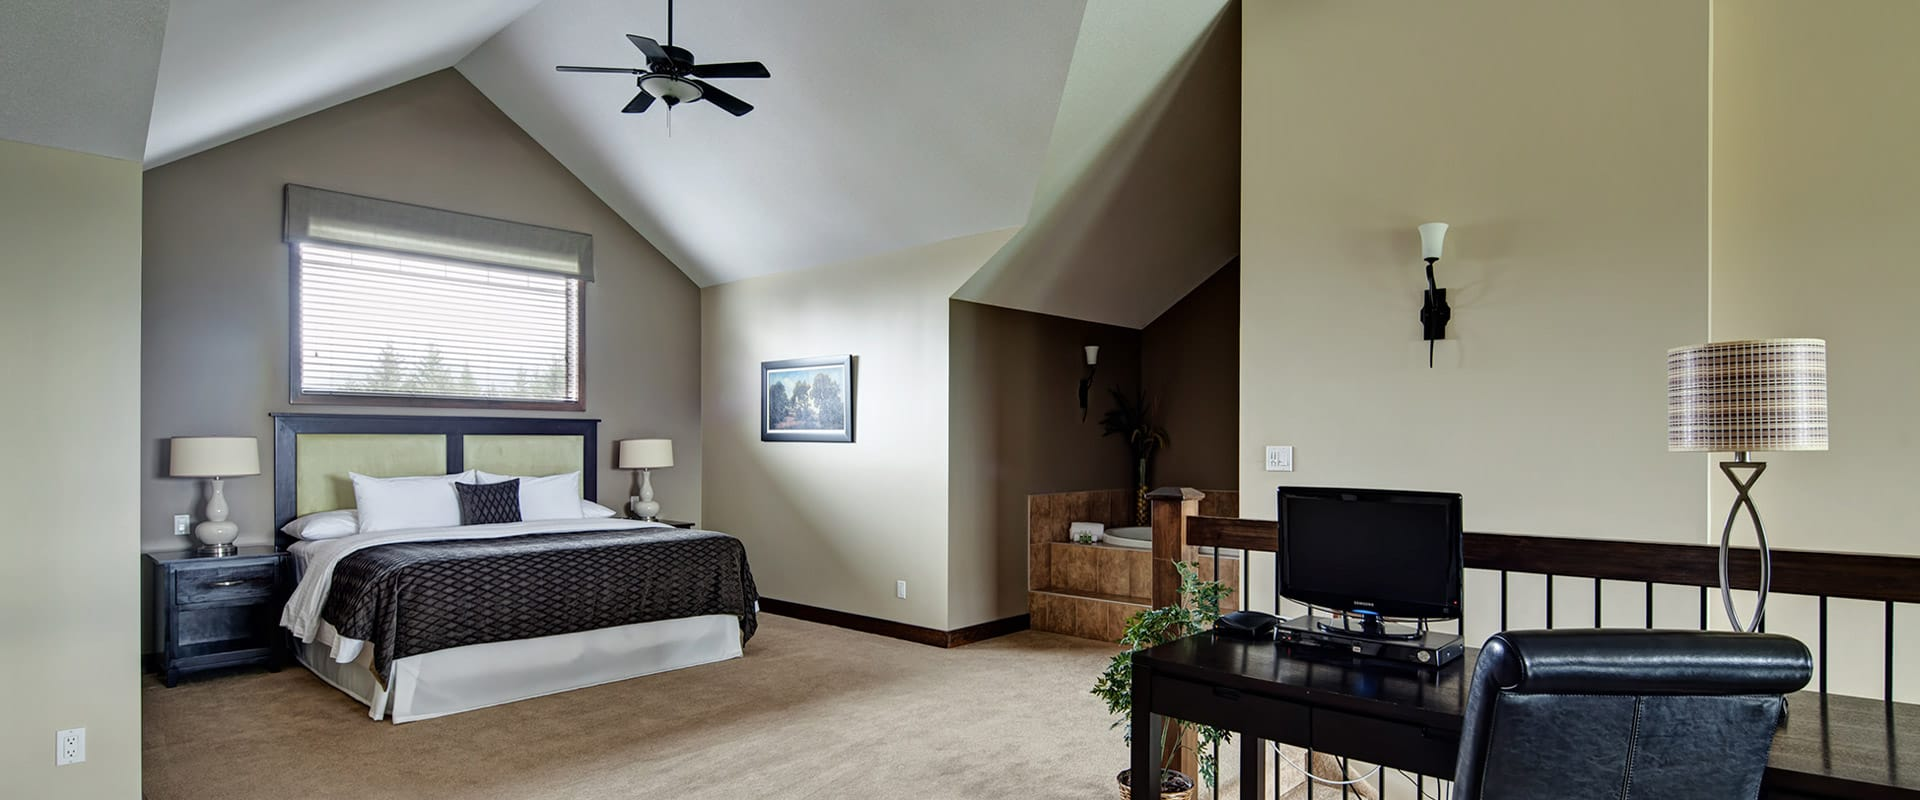 Radium resort bighorn meadows two bedroom lofts for 2 bedroom lofts